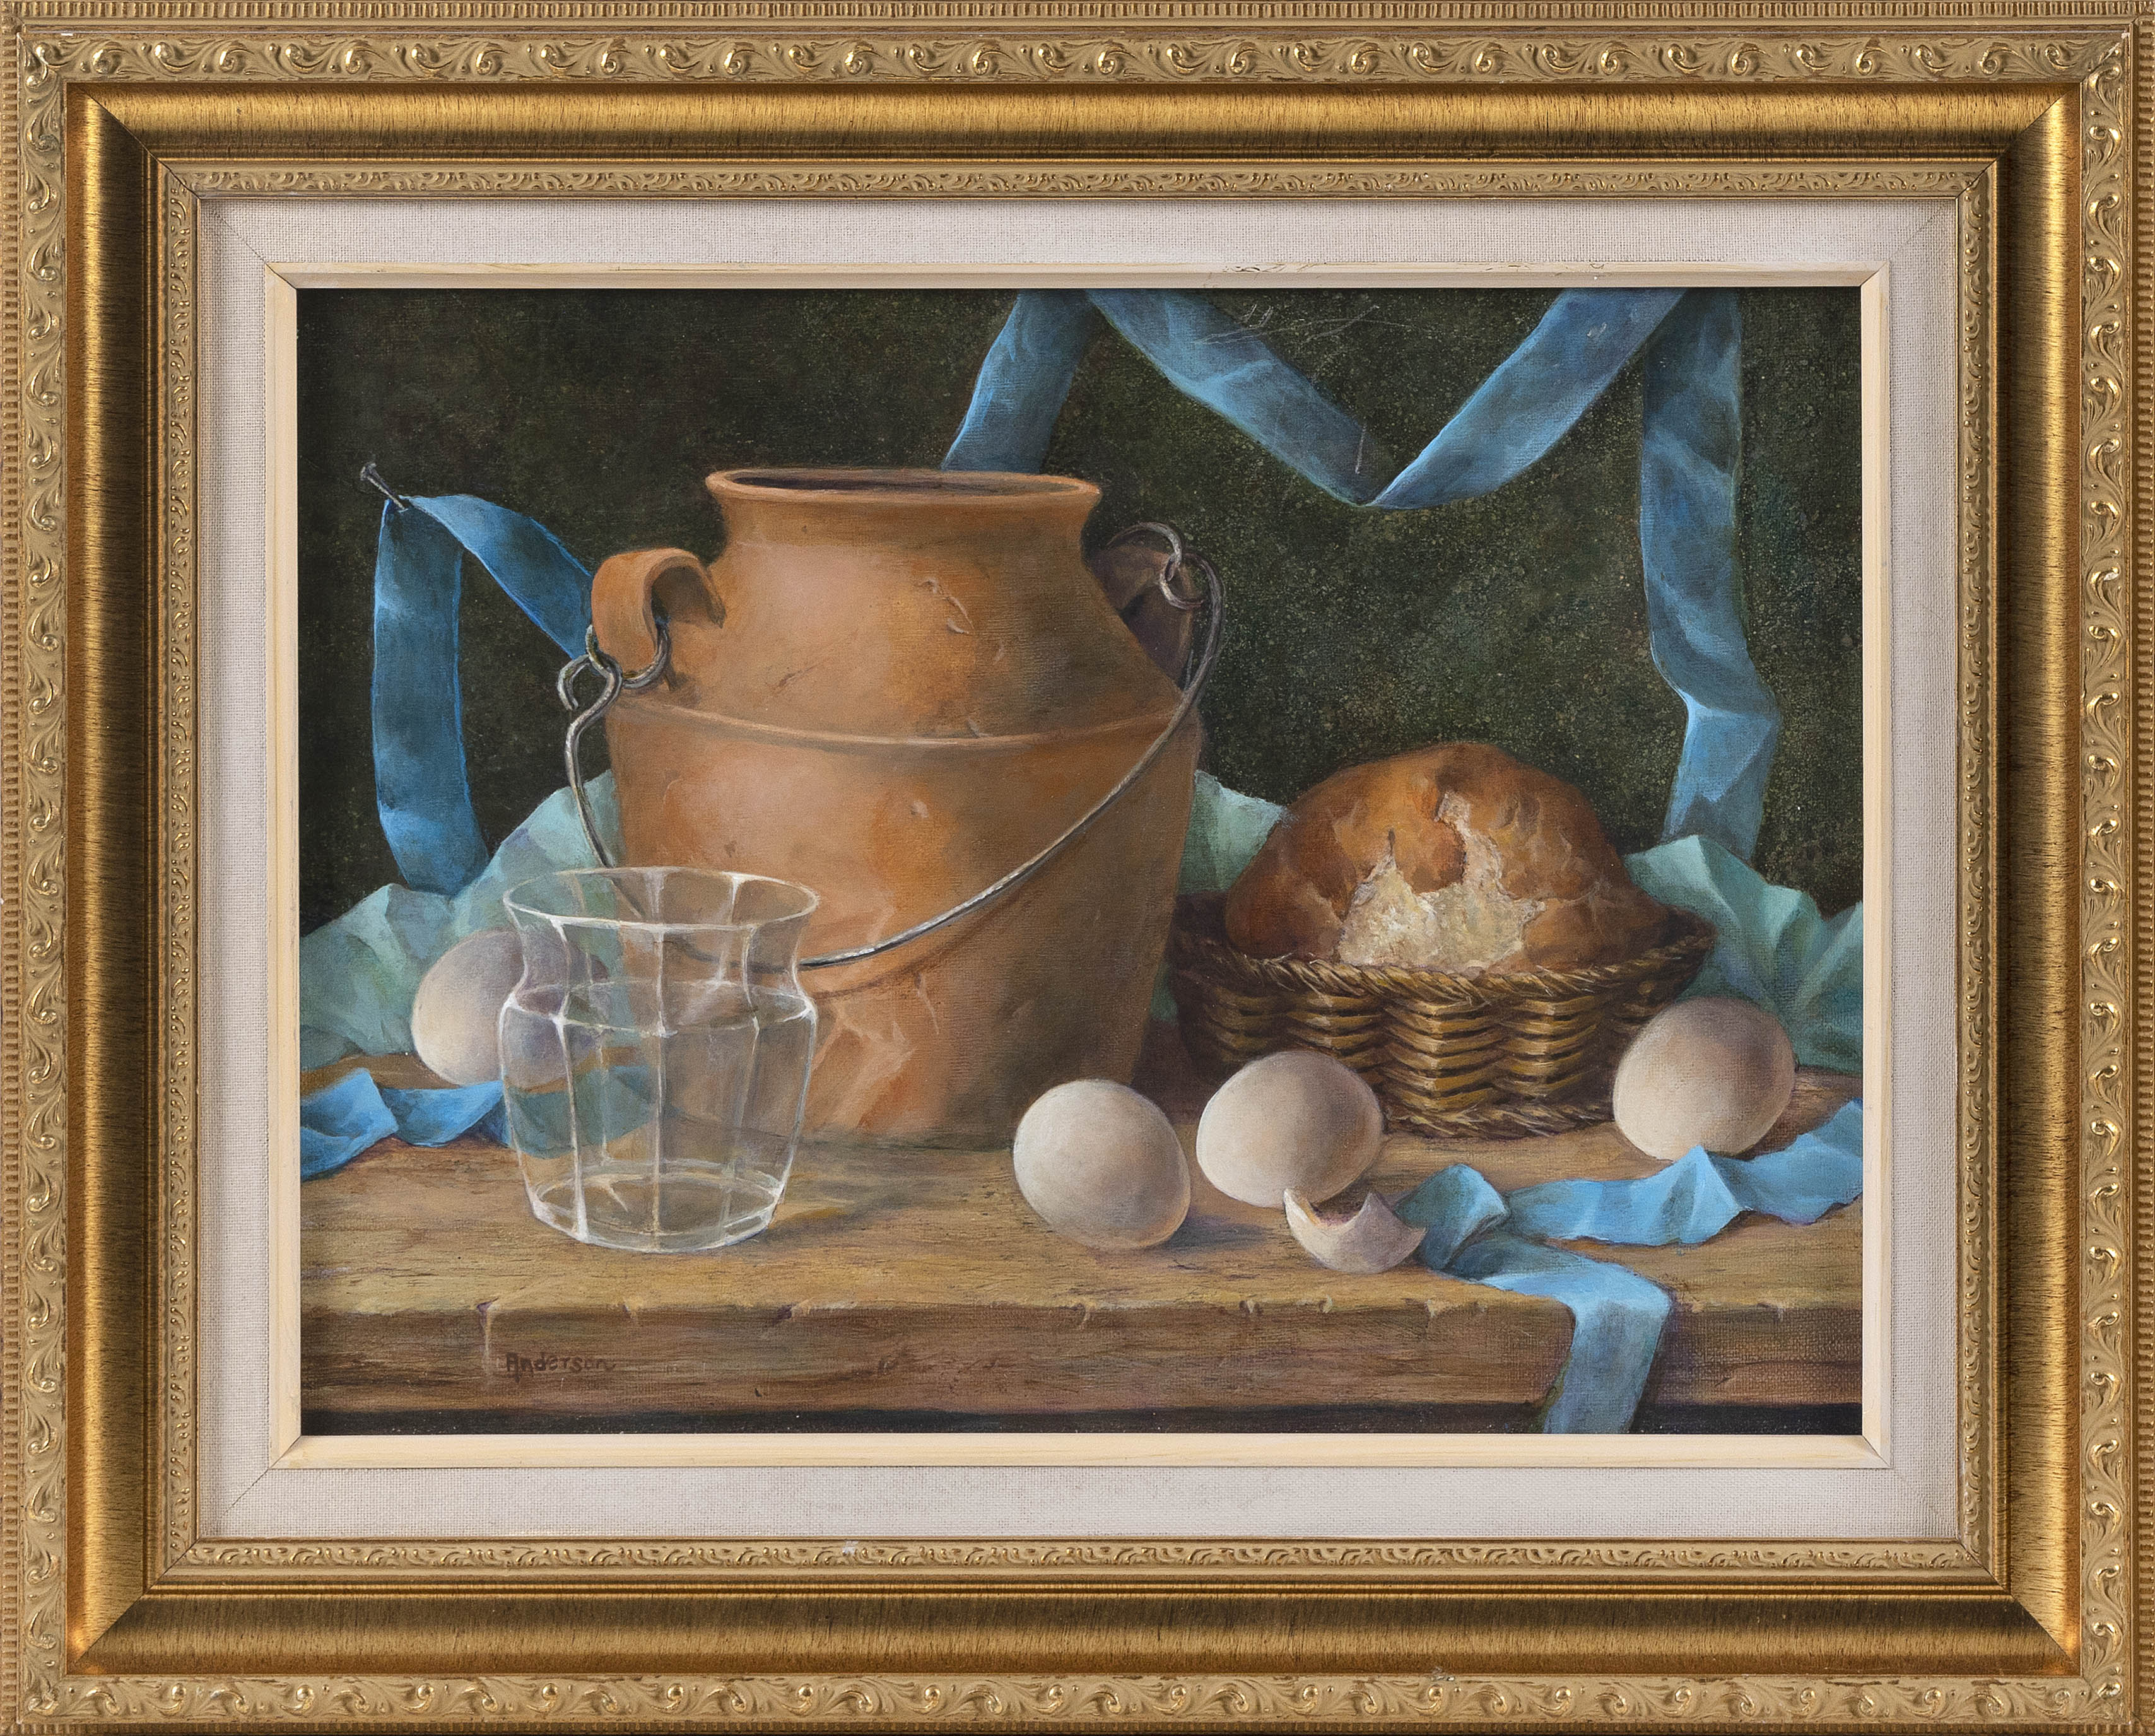 ANNE ANDERSON (Connecticut, Contemporary), Still life of eggs, a loaf of bread, a crock and a glass., Acrylic on board, 12